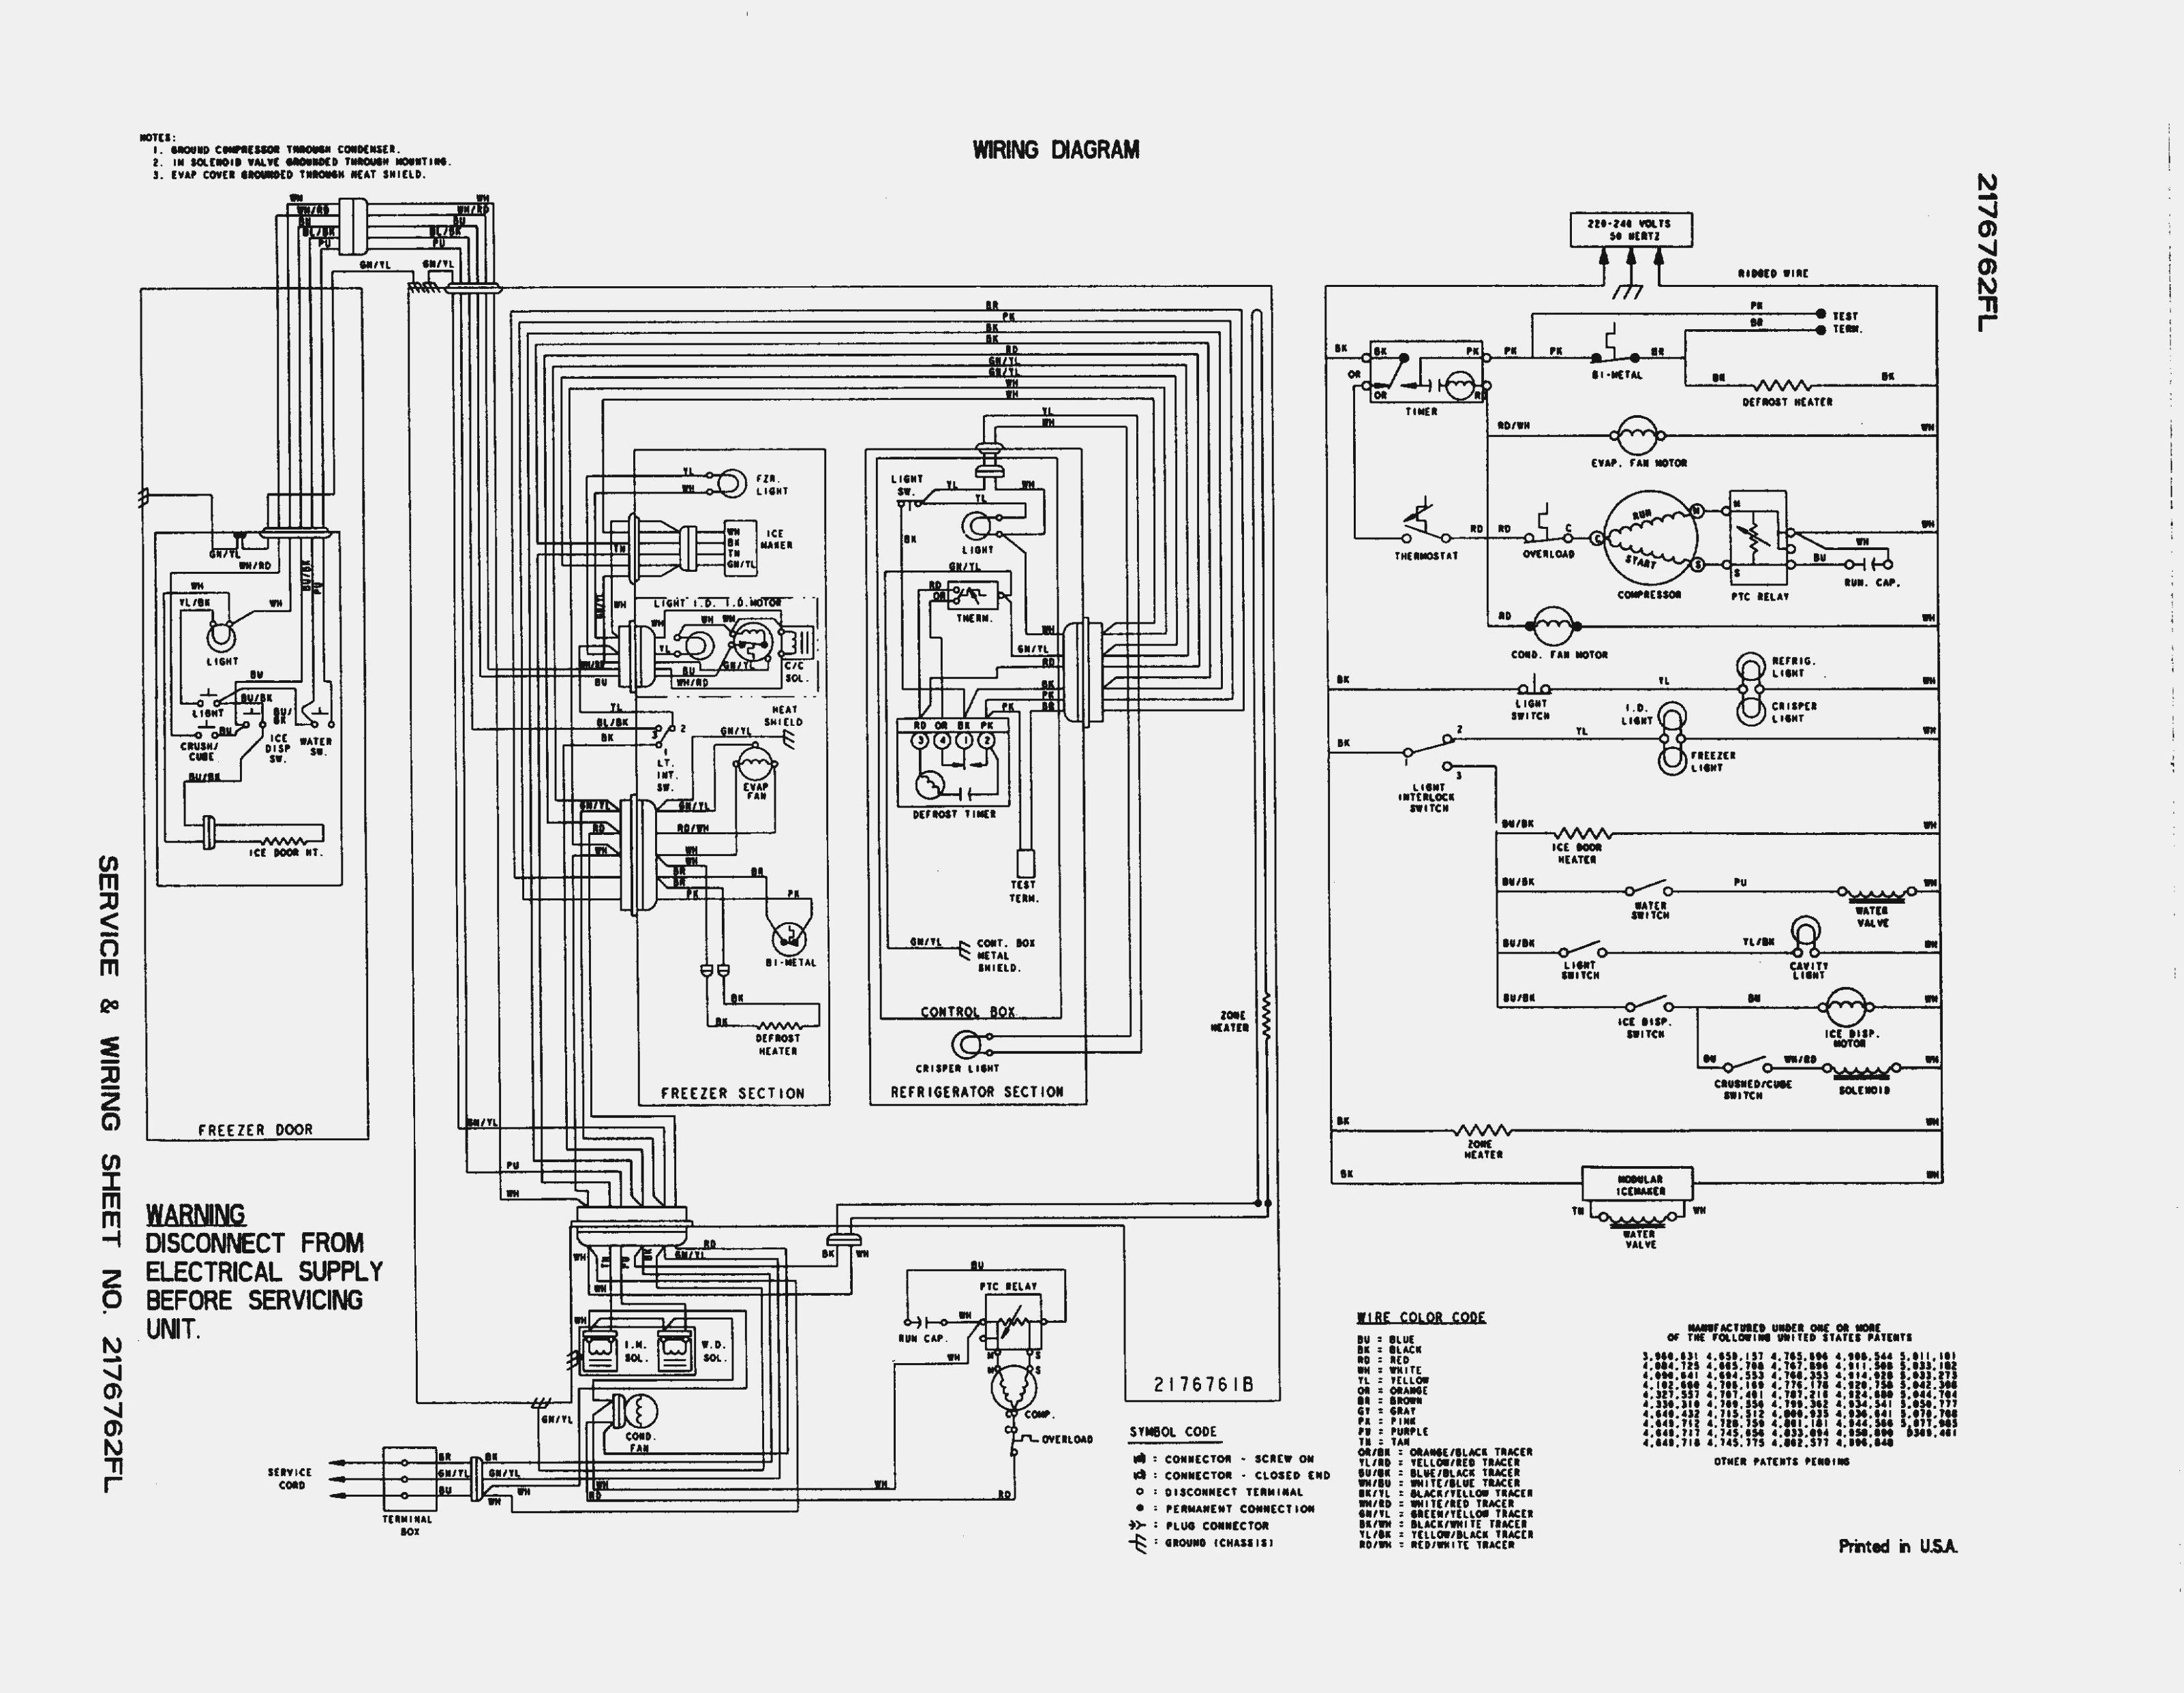 Diagrams Digramssample Diagramimages Wiringdiagramsample Wiringdiagram Check More At Https Nostoc Co Wi Trailer Wiring Diagram Diagram Whirlpool Fridges